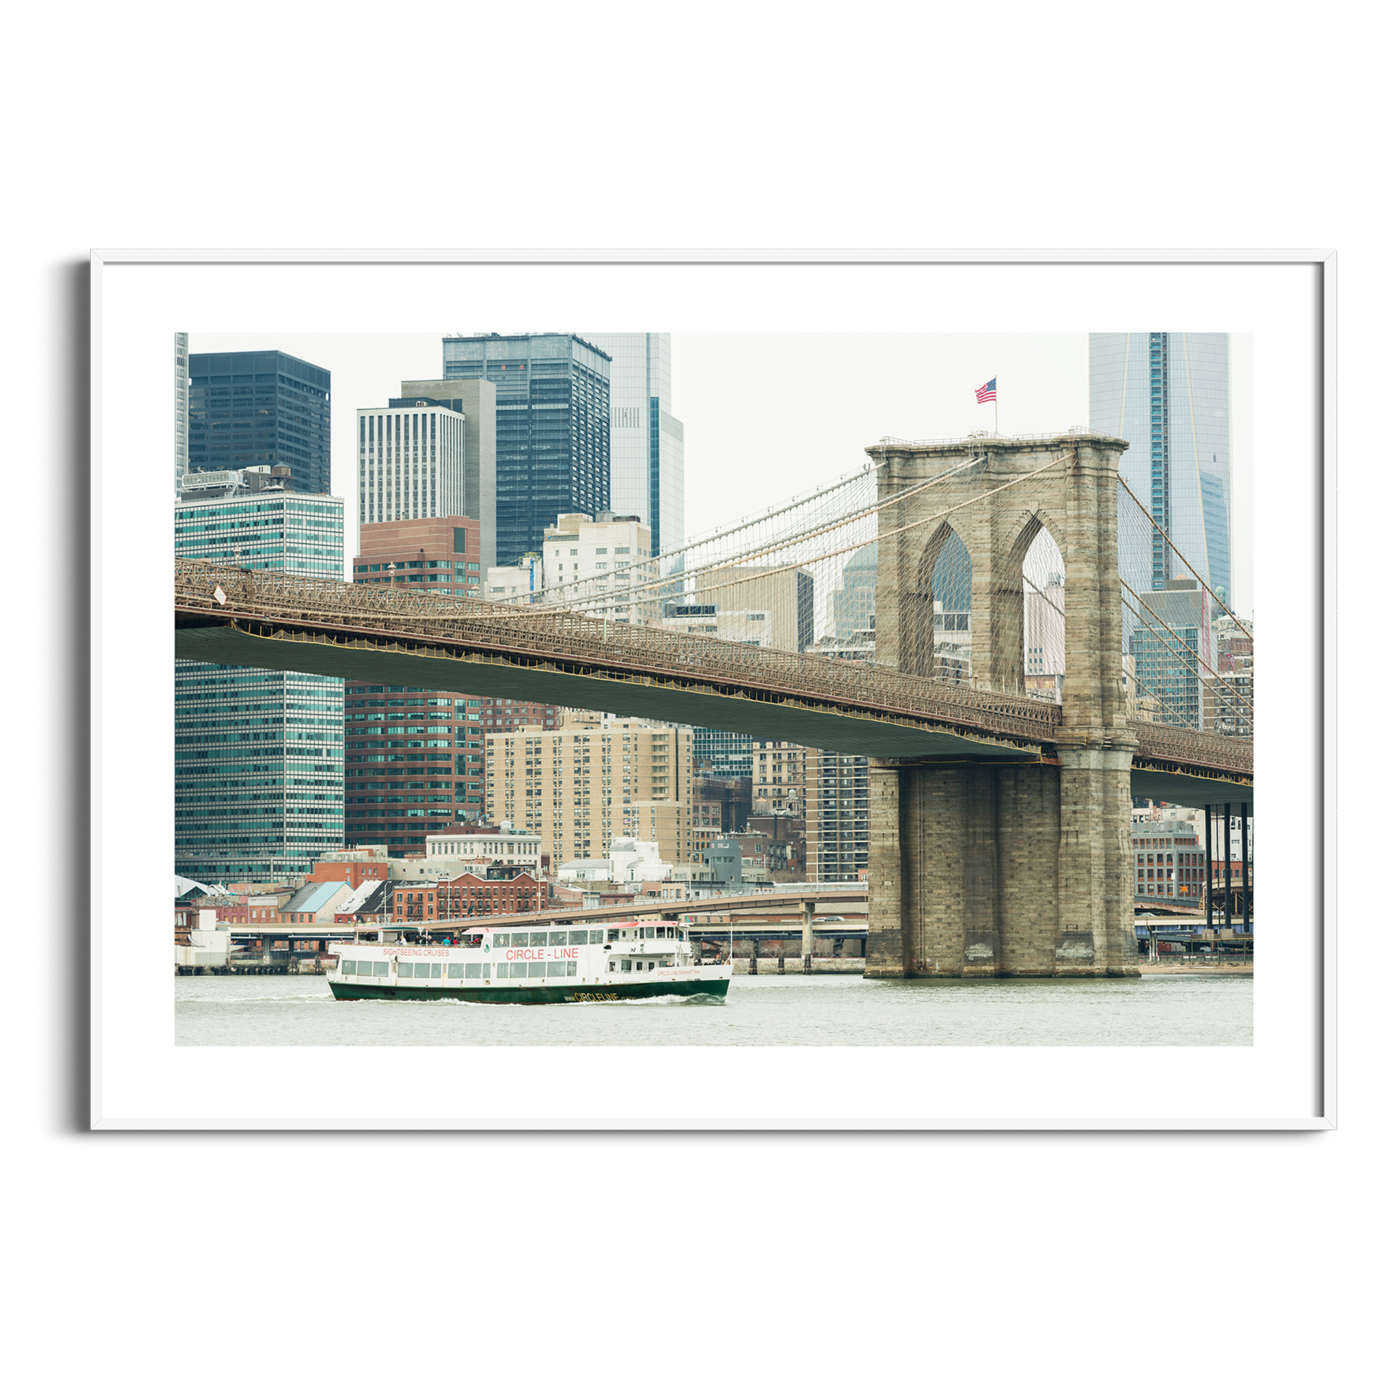 Brooklyn Bridge and East River photography - print with white border in the white frame